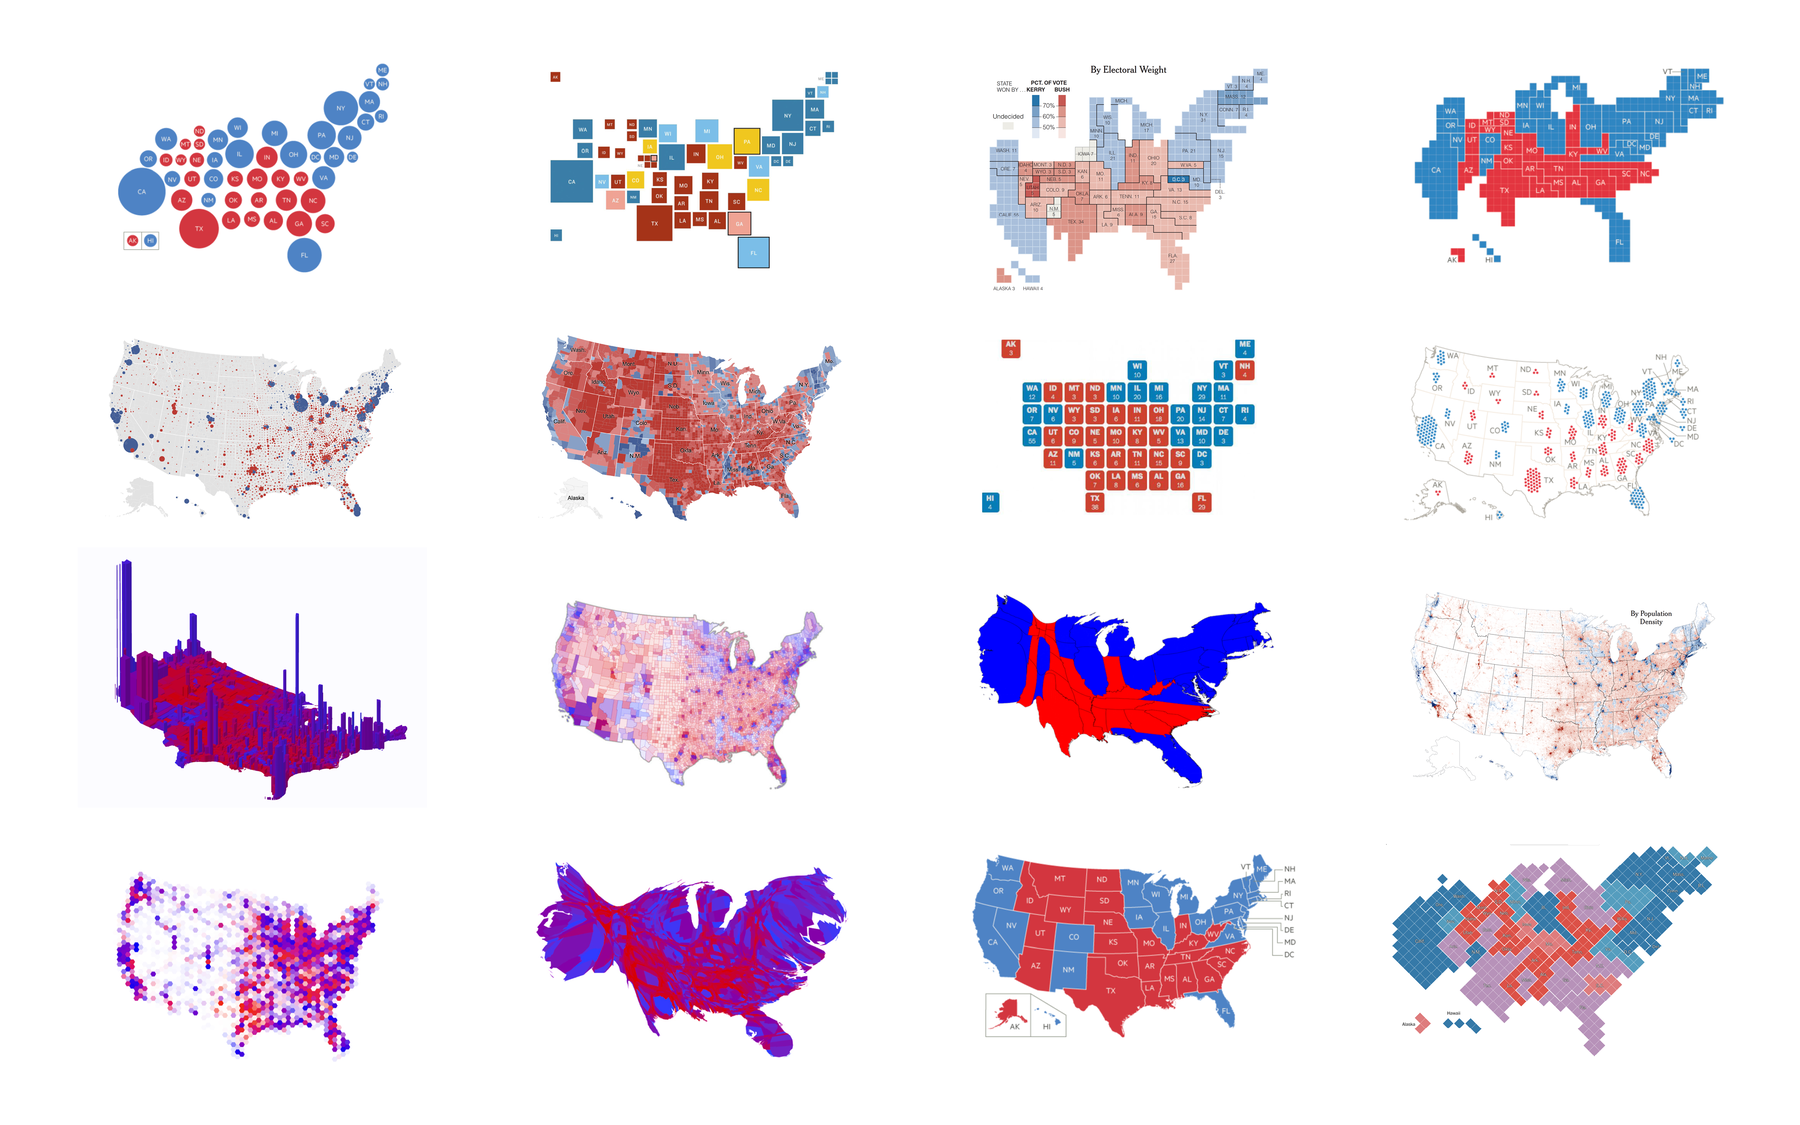 Instead Of Asking How Do We Want To Display The Electoral Votes We Should First Ask What Do We Want To Map